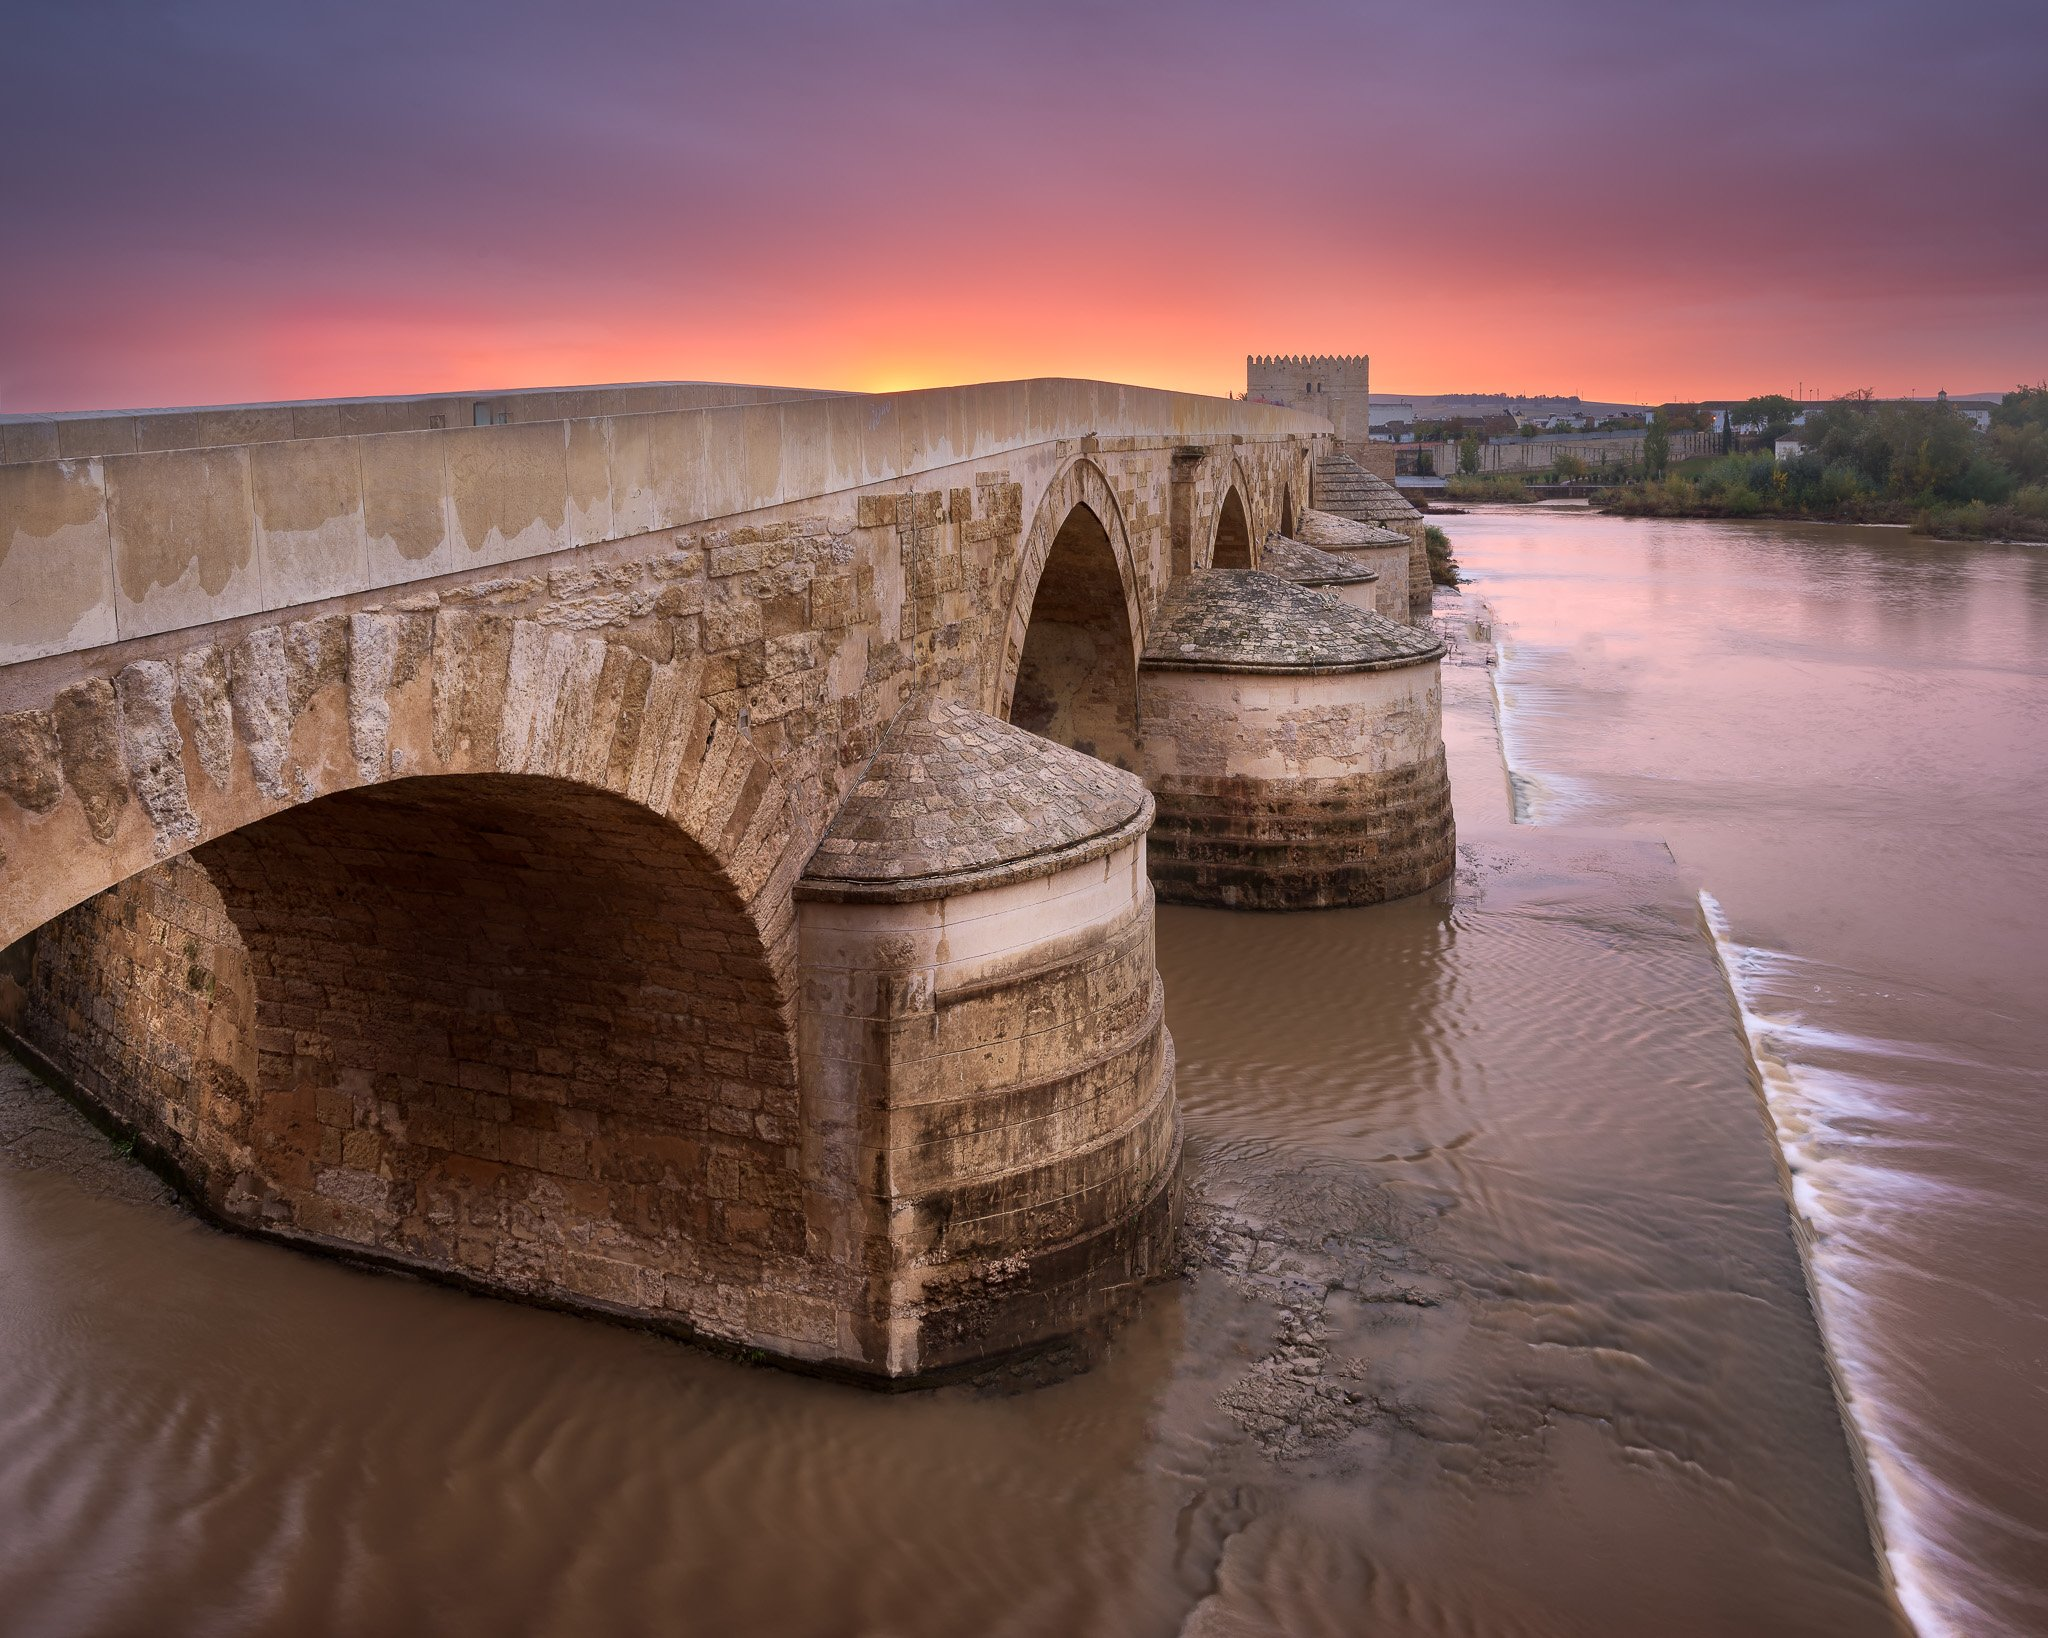 ancient, andalucia, andalusia, andalusian, arch, architectural, architecture, blue, bridge, building, castle, cathedral, catholic, church, city, cityscape, cordoba, culture, dawn, europe, fort, guadalquivir, heritage, historic, history, iberia, iberian, i, anshar